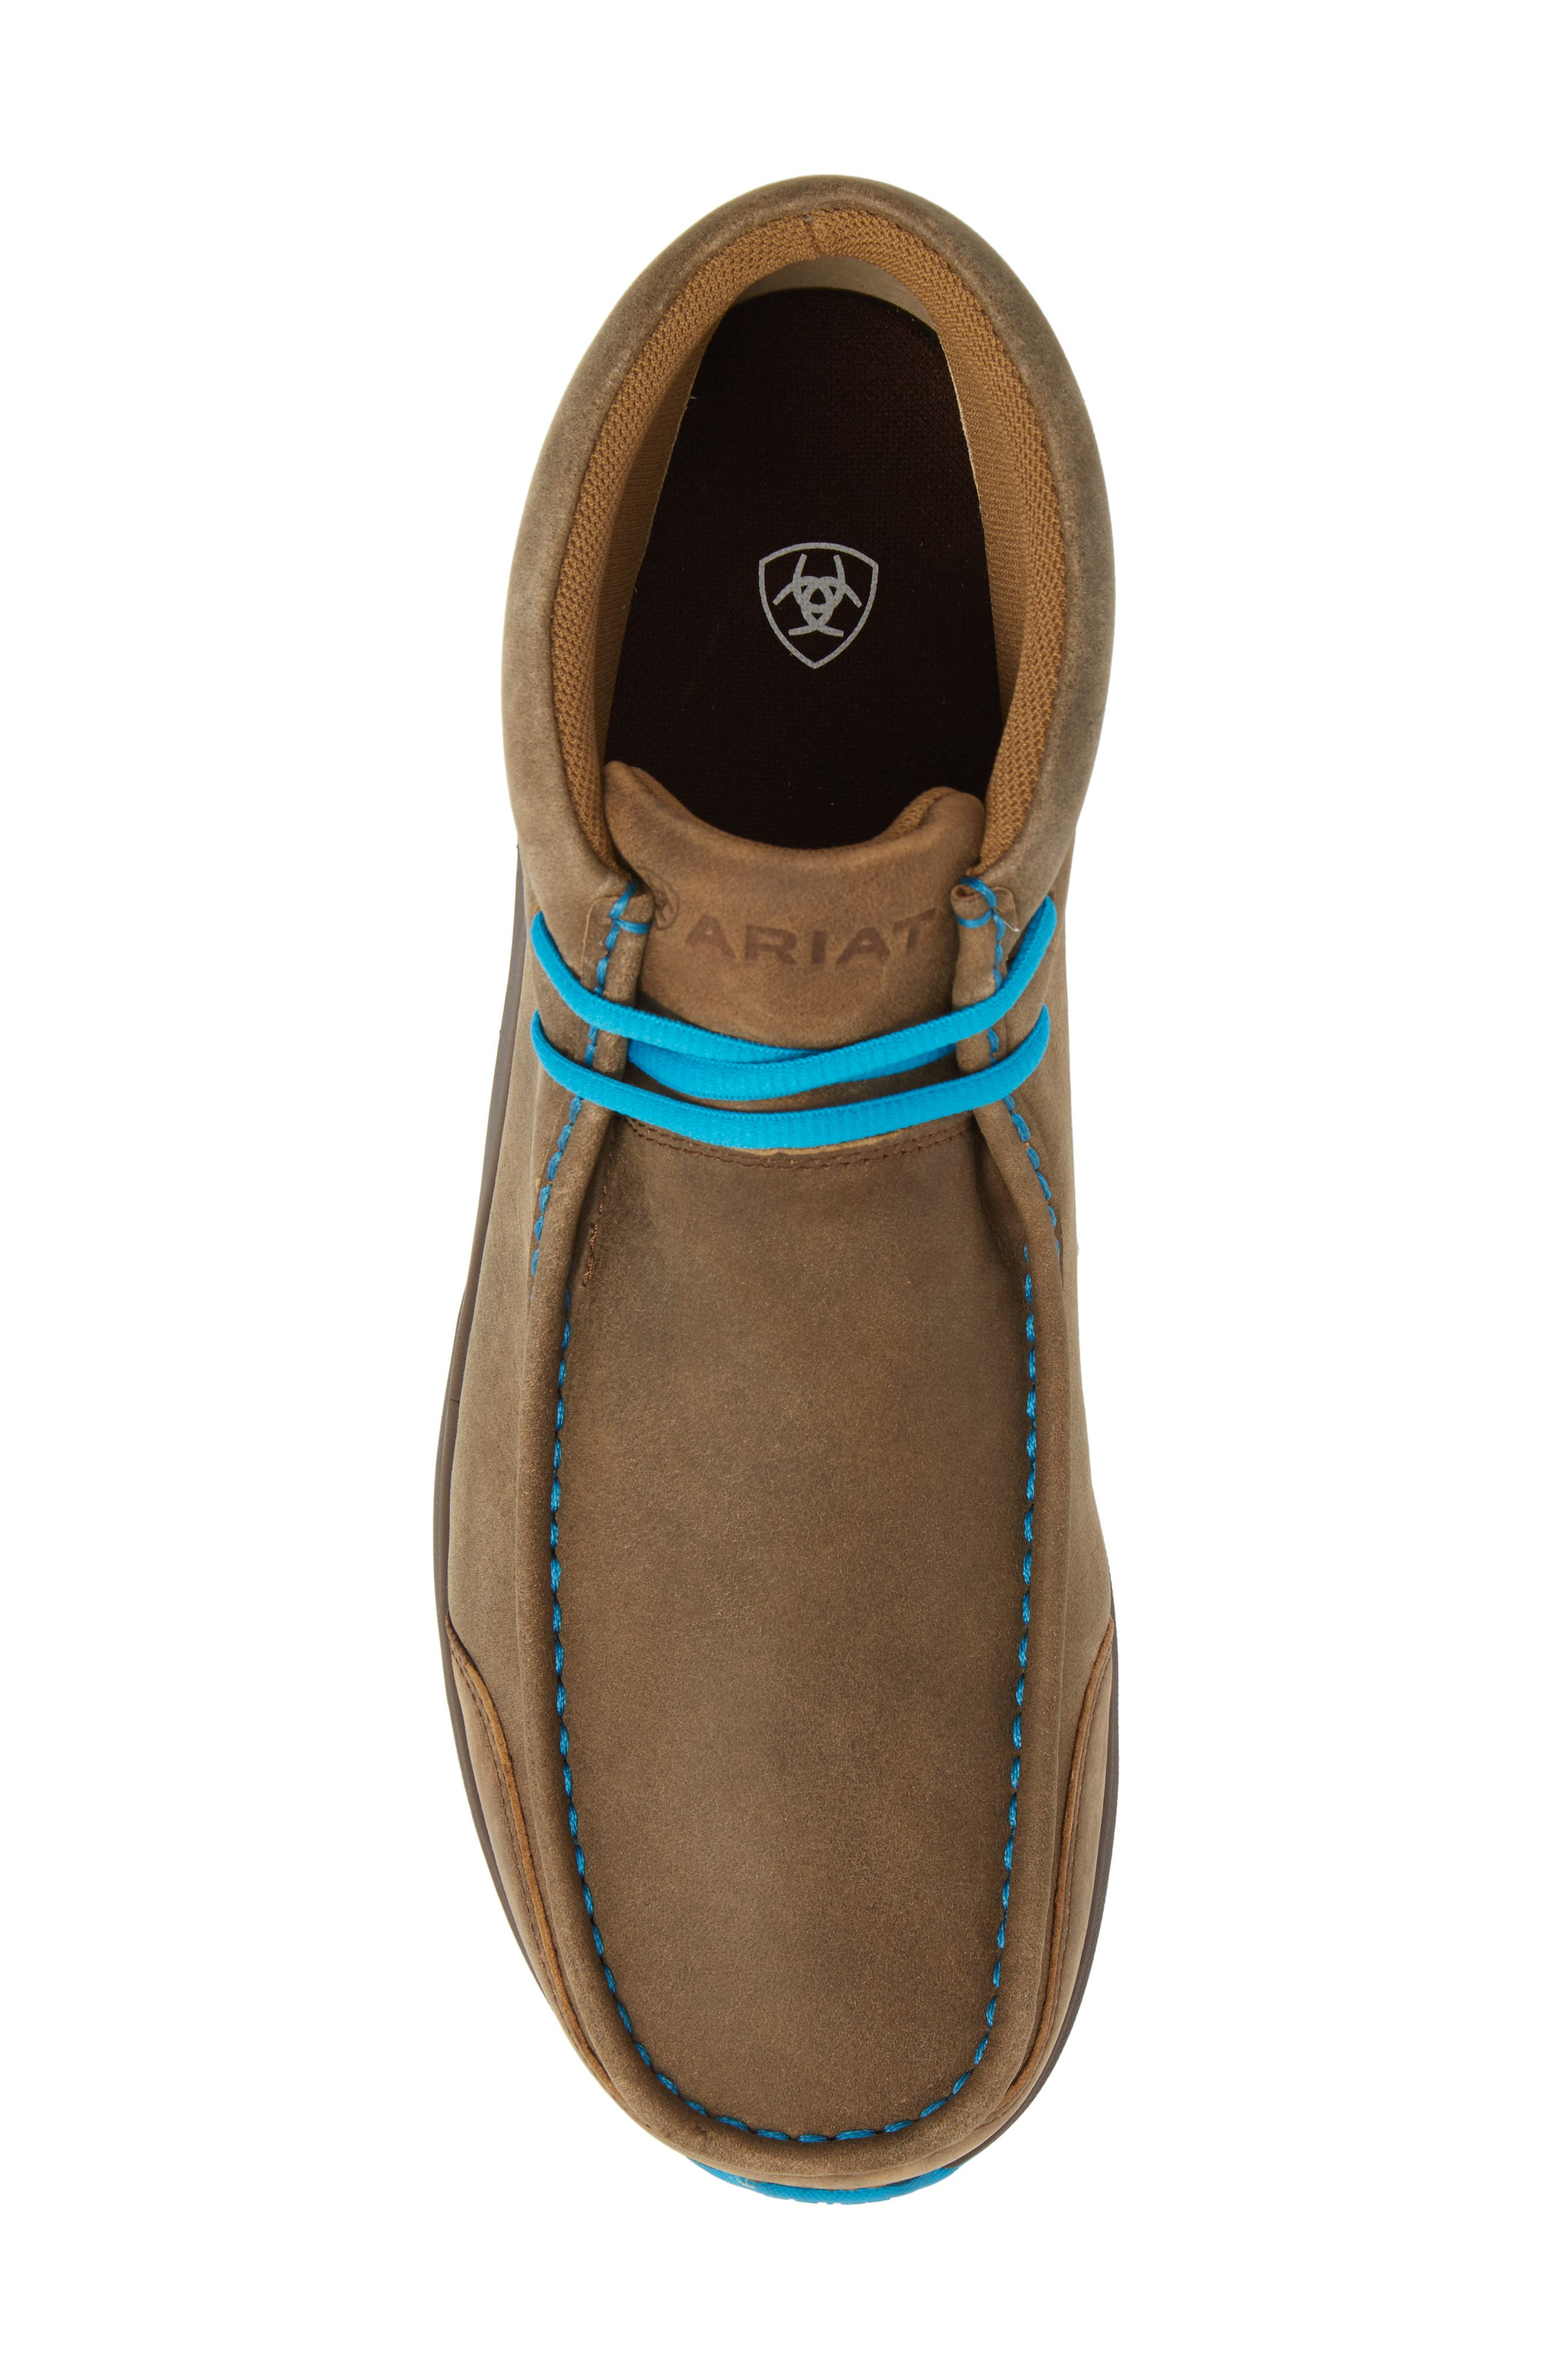 ARIAT, Spitfire Chukka Boot, Alternate thumbnail 5, color, BROWN BOMBER/ BLUE LEATHER